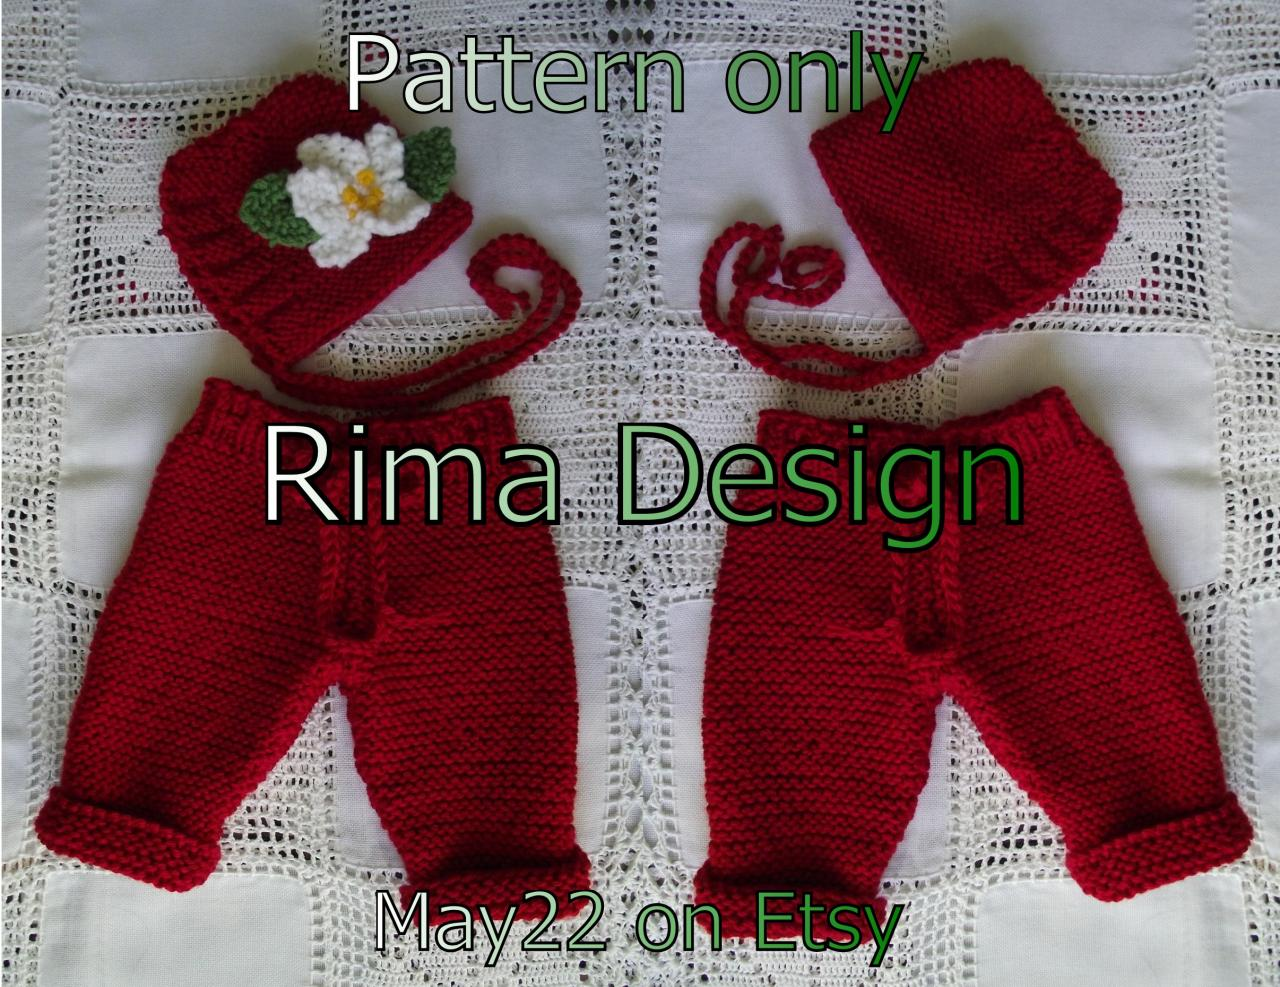 Knit pattern Baby infant hat bonnet pants diaper cover set twin original design knitting pattern pdf instant download newborn girl boy unigender Canada